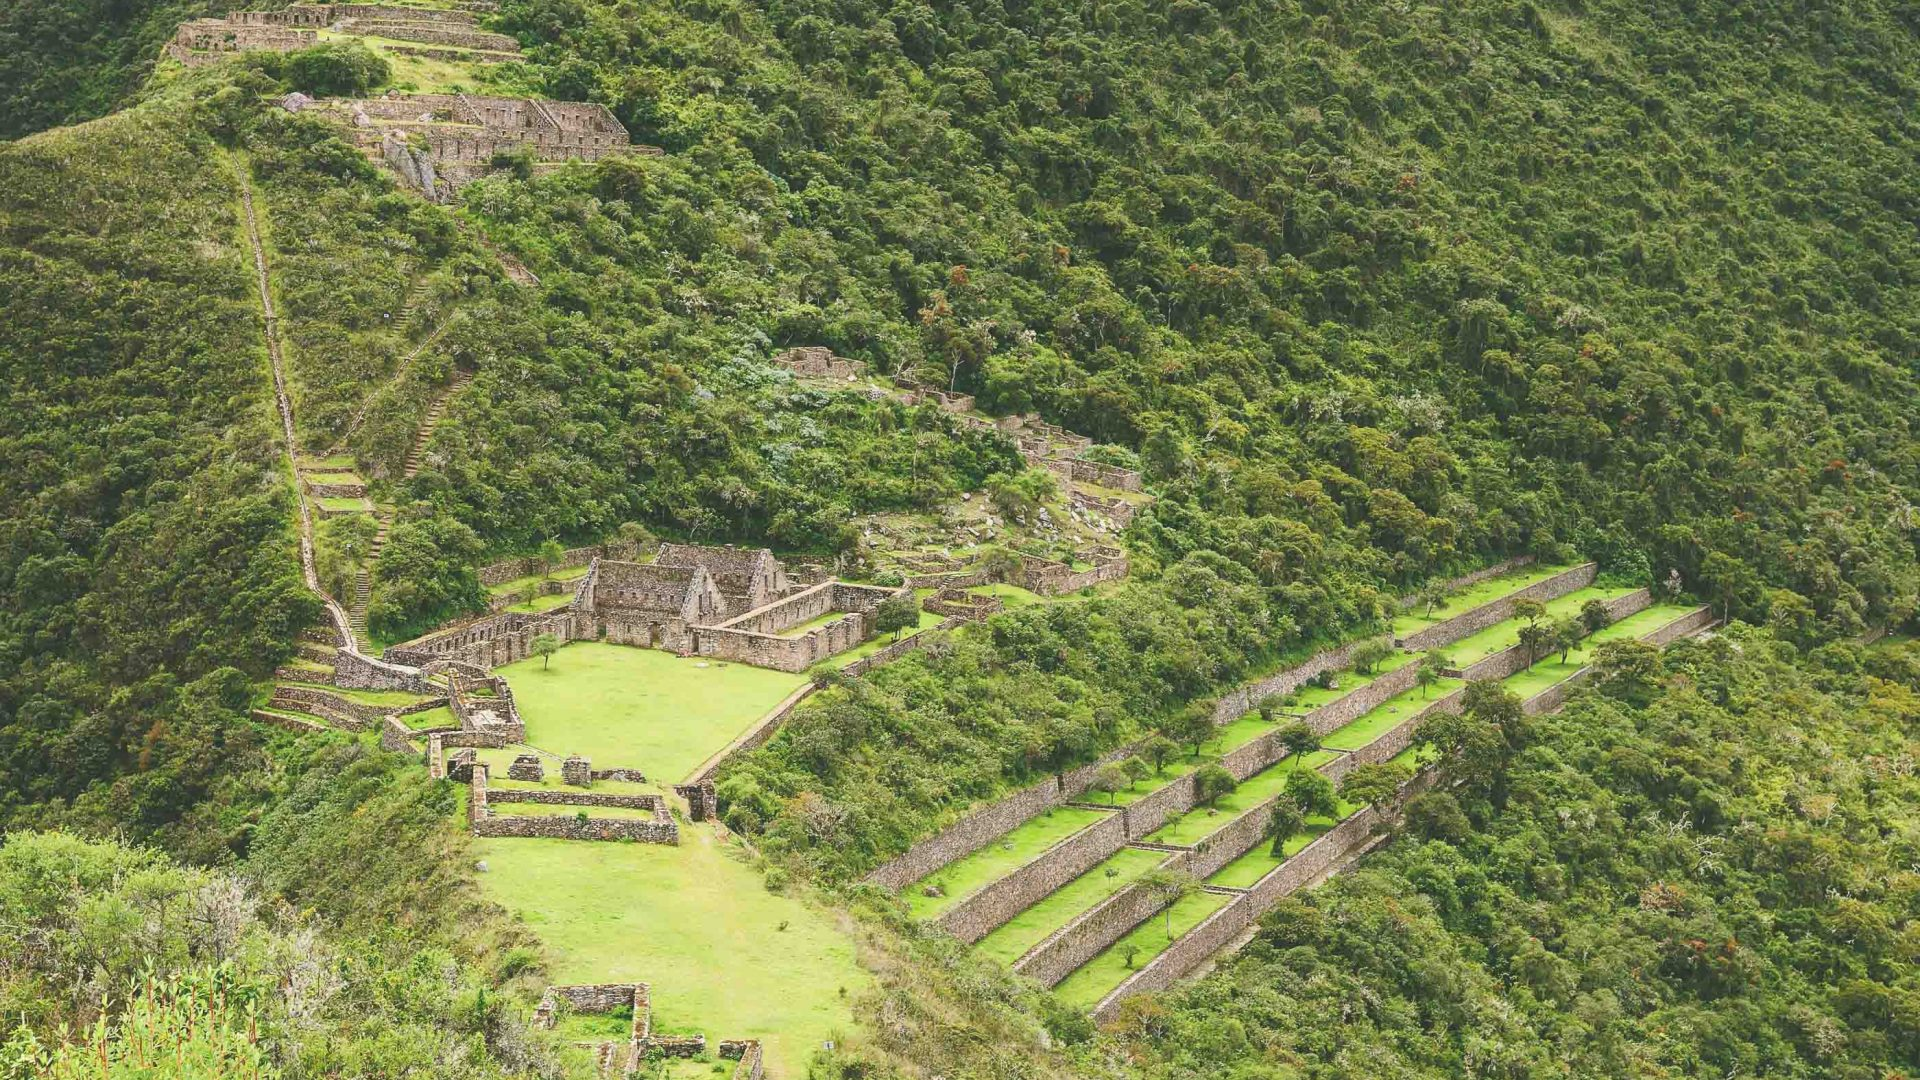 The Incan ruins of Choquequirao in Peru.